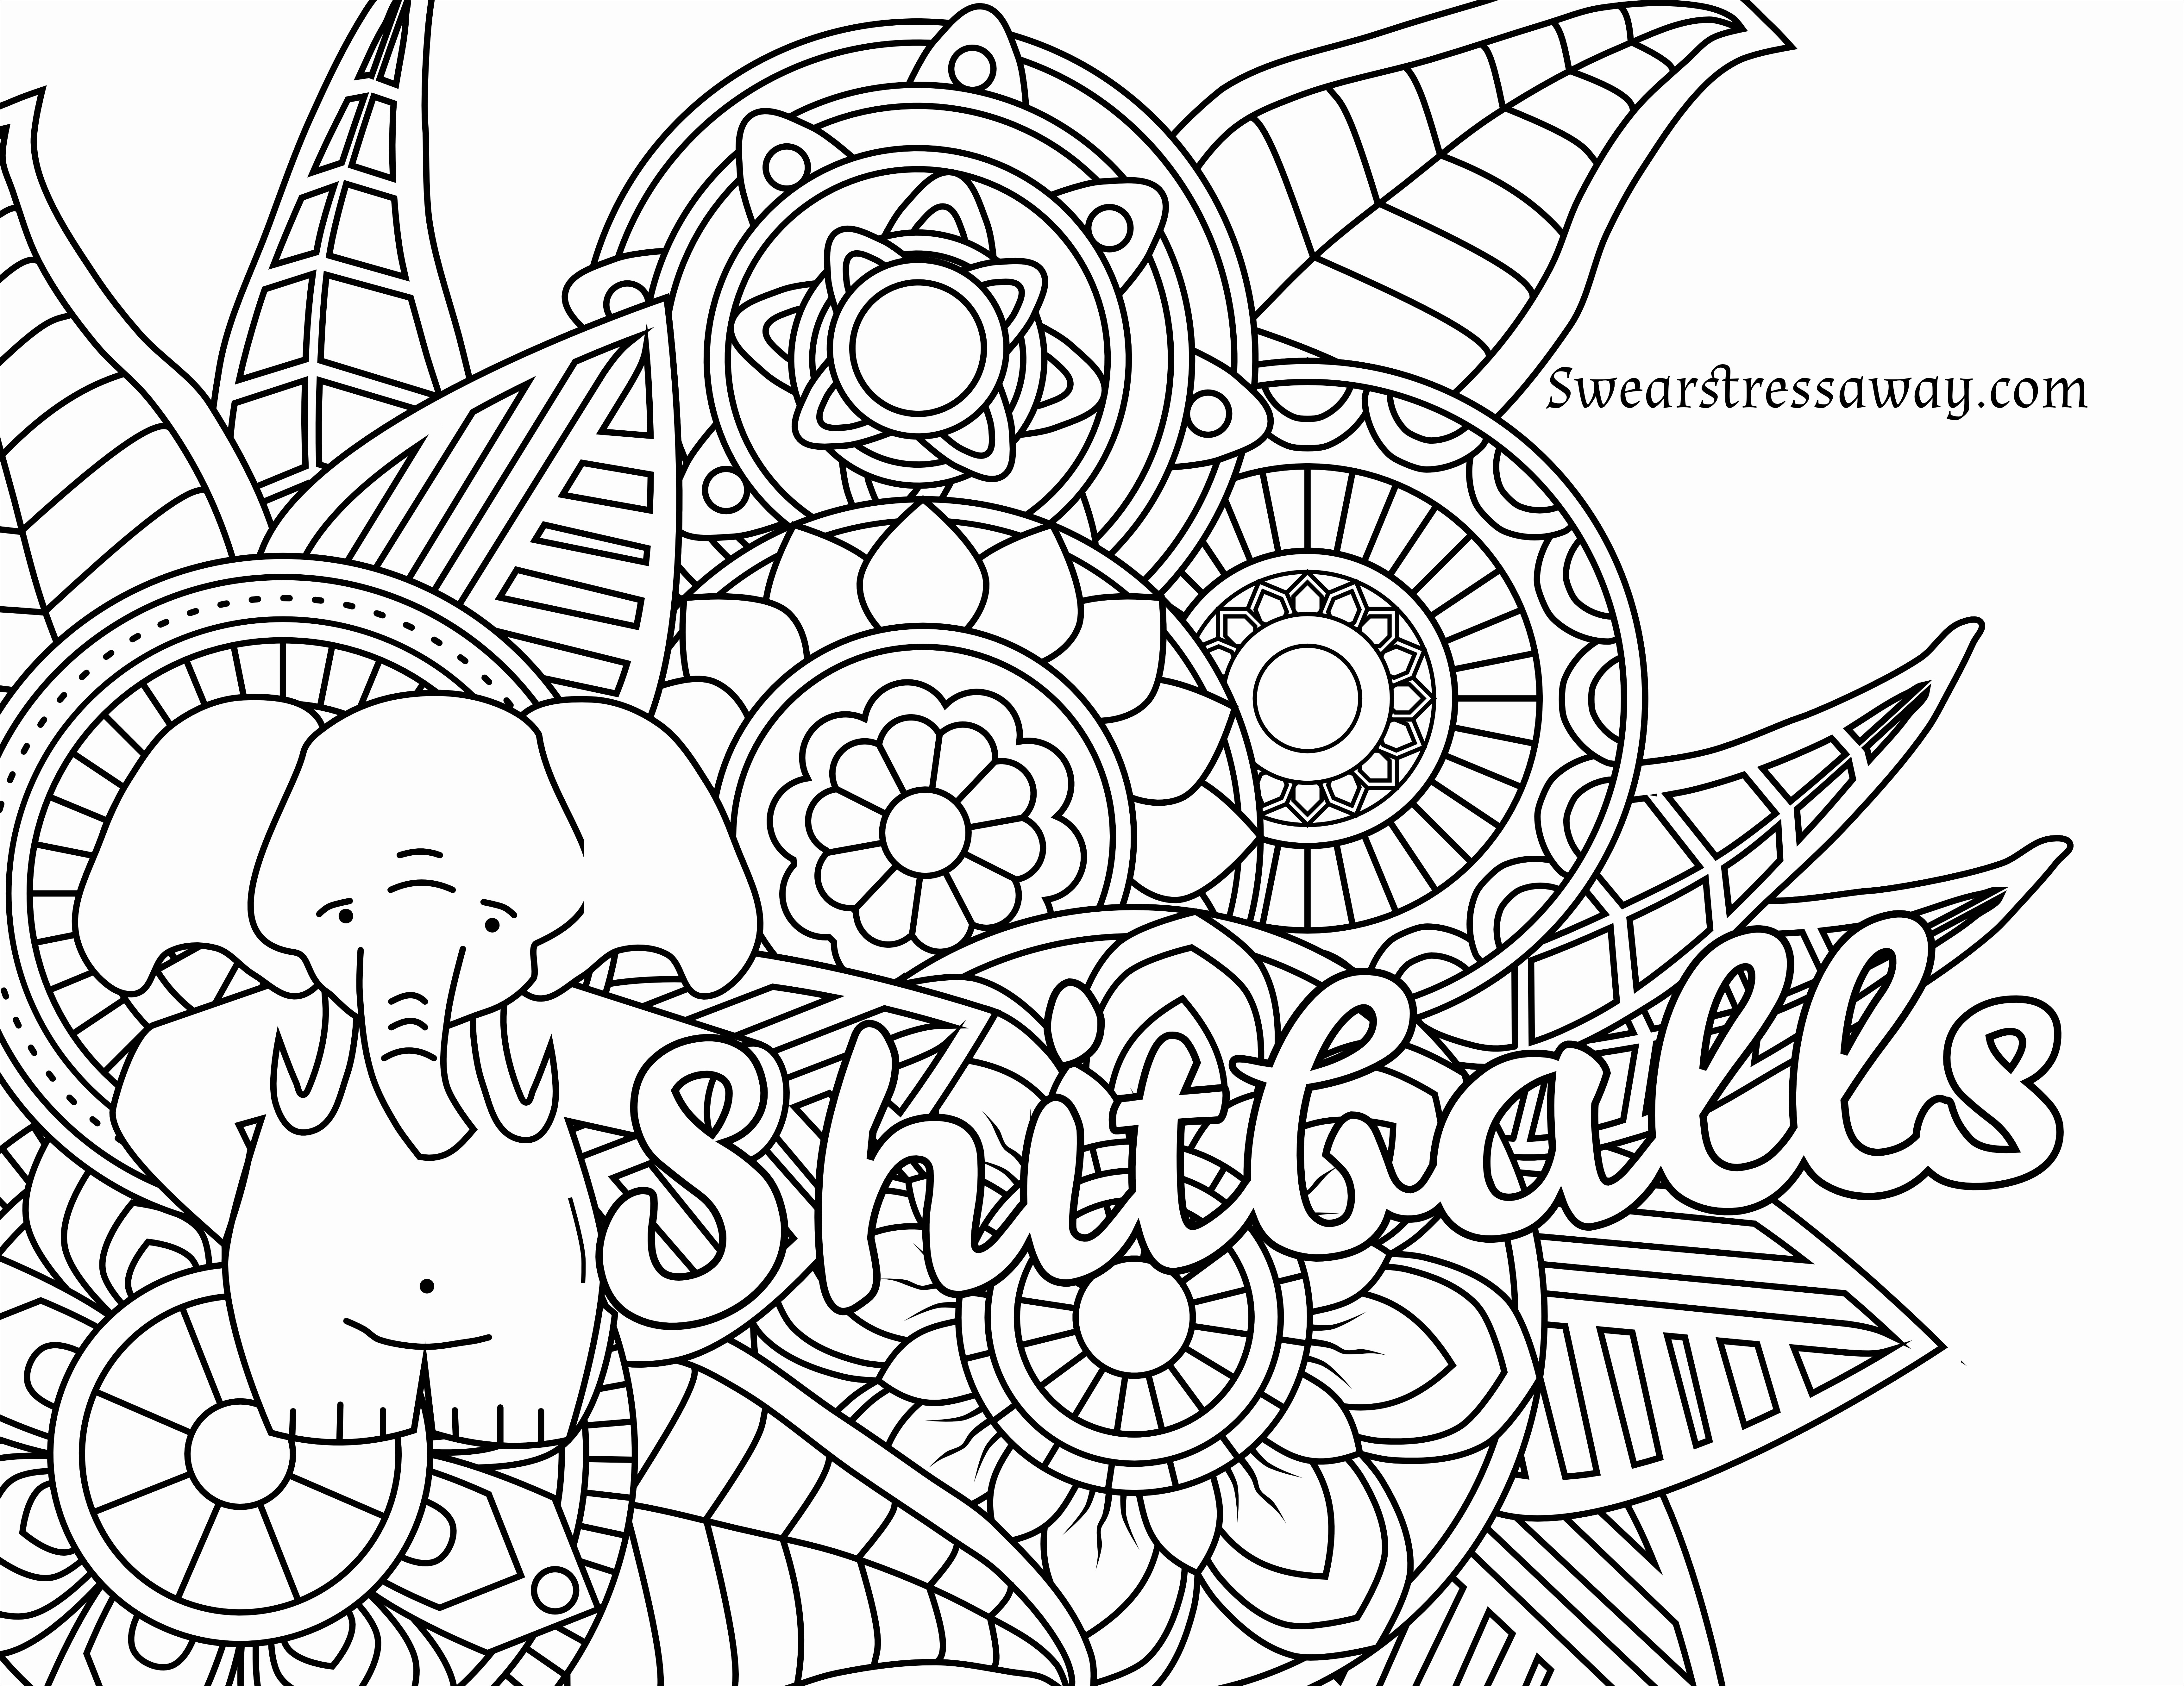 Sweary Coloring Pages  Printable 18i - Free Download